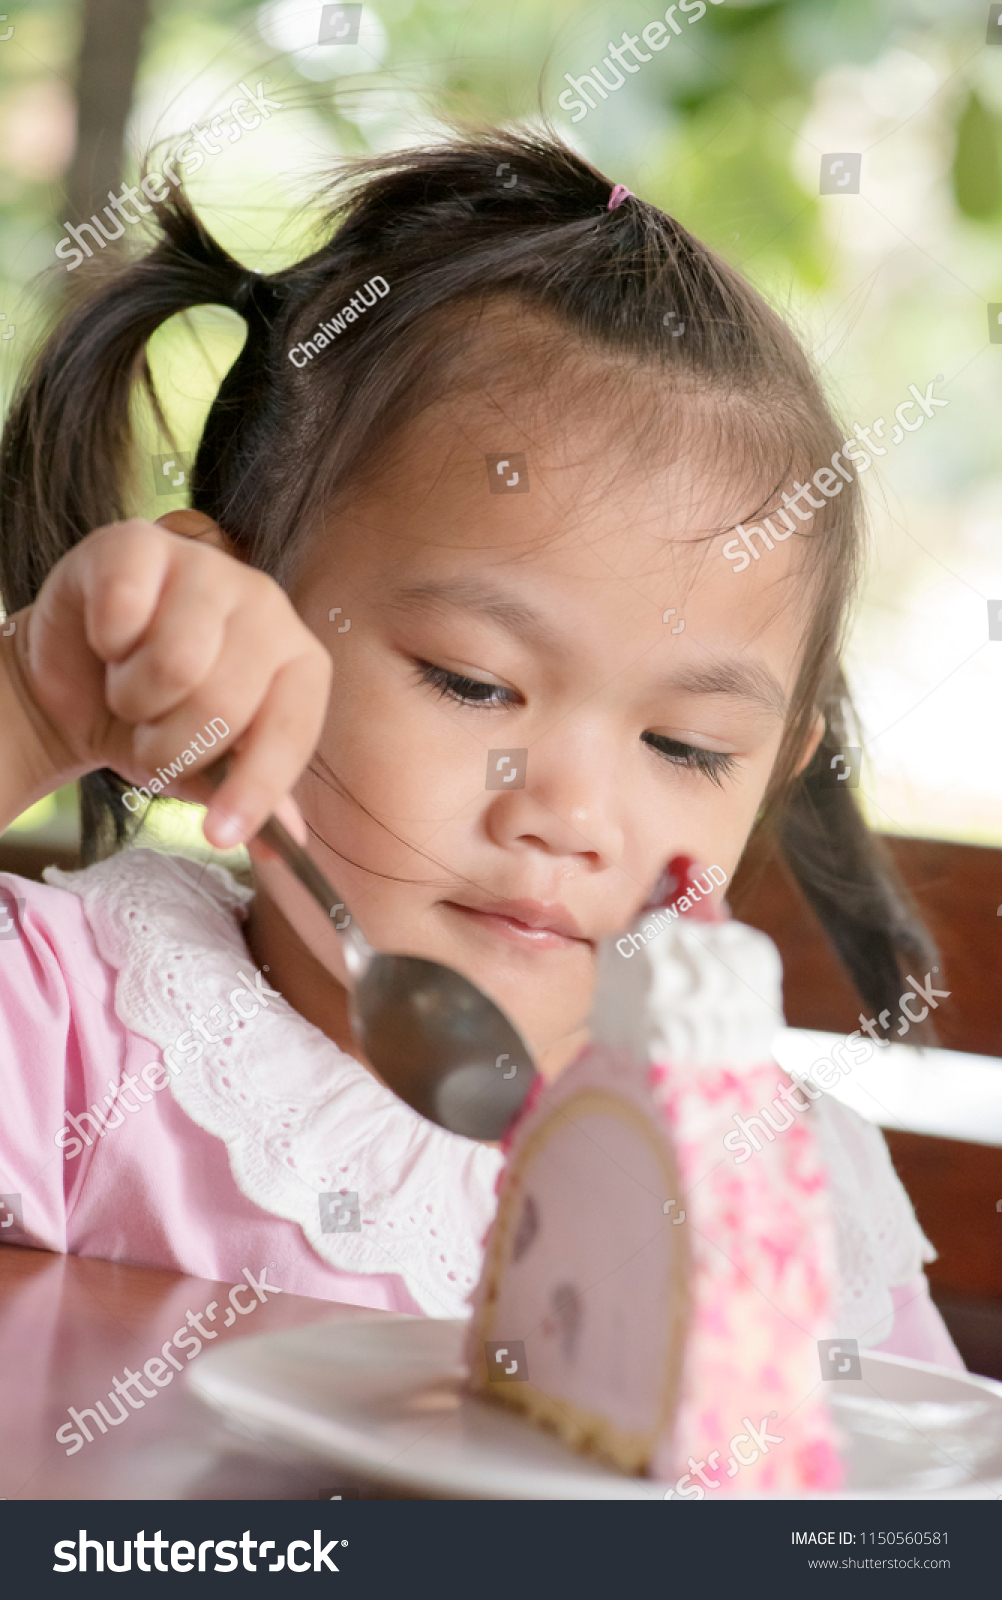 Asian girls ages cute. Asian child with emotional expression, 2 year old  girl 6